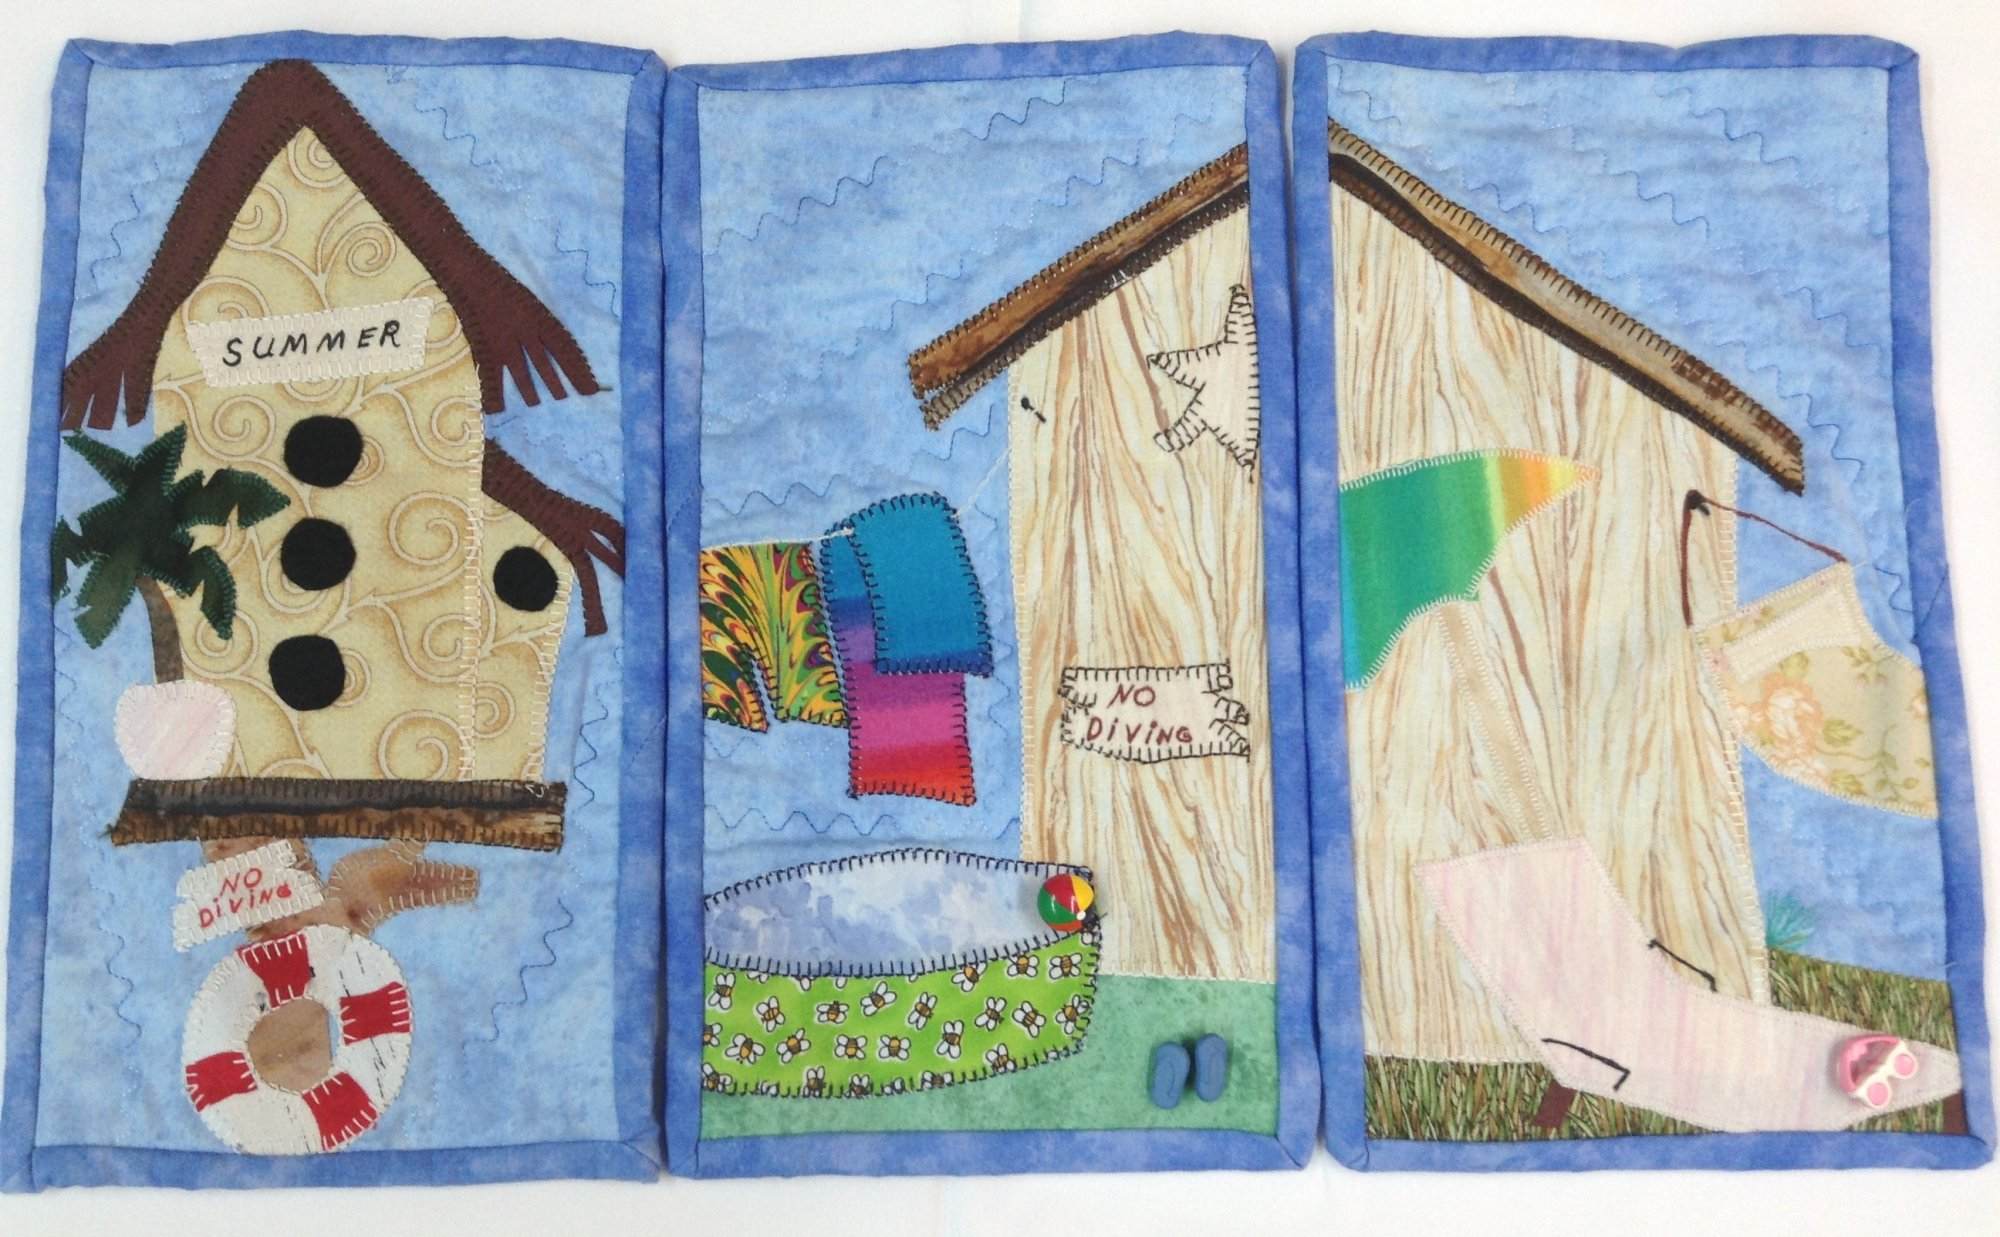 Wall Hangings for Sale:  Summer Birdhouse Theme - Includes 3 Wall Hangings